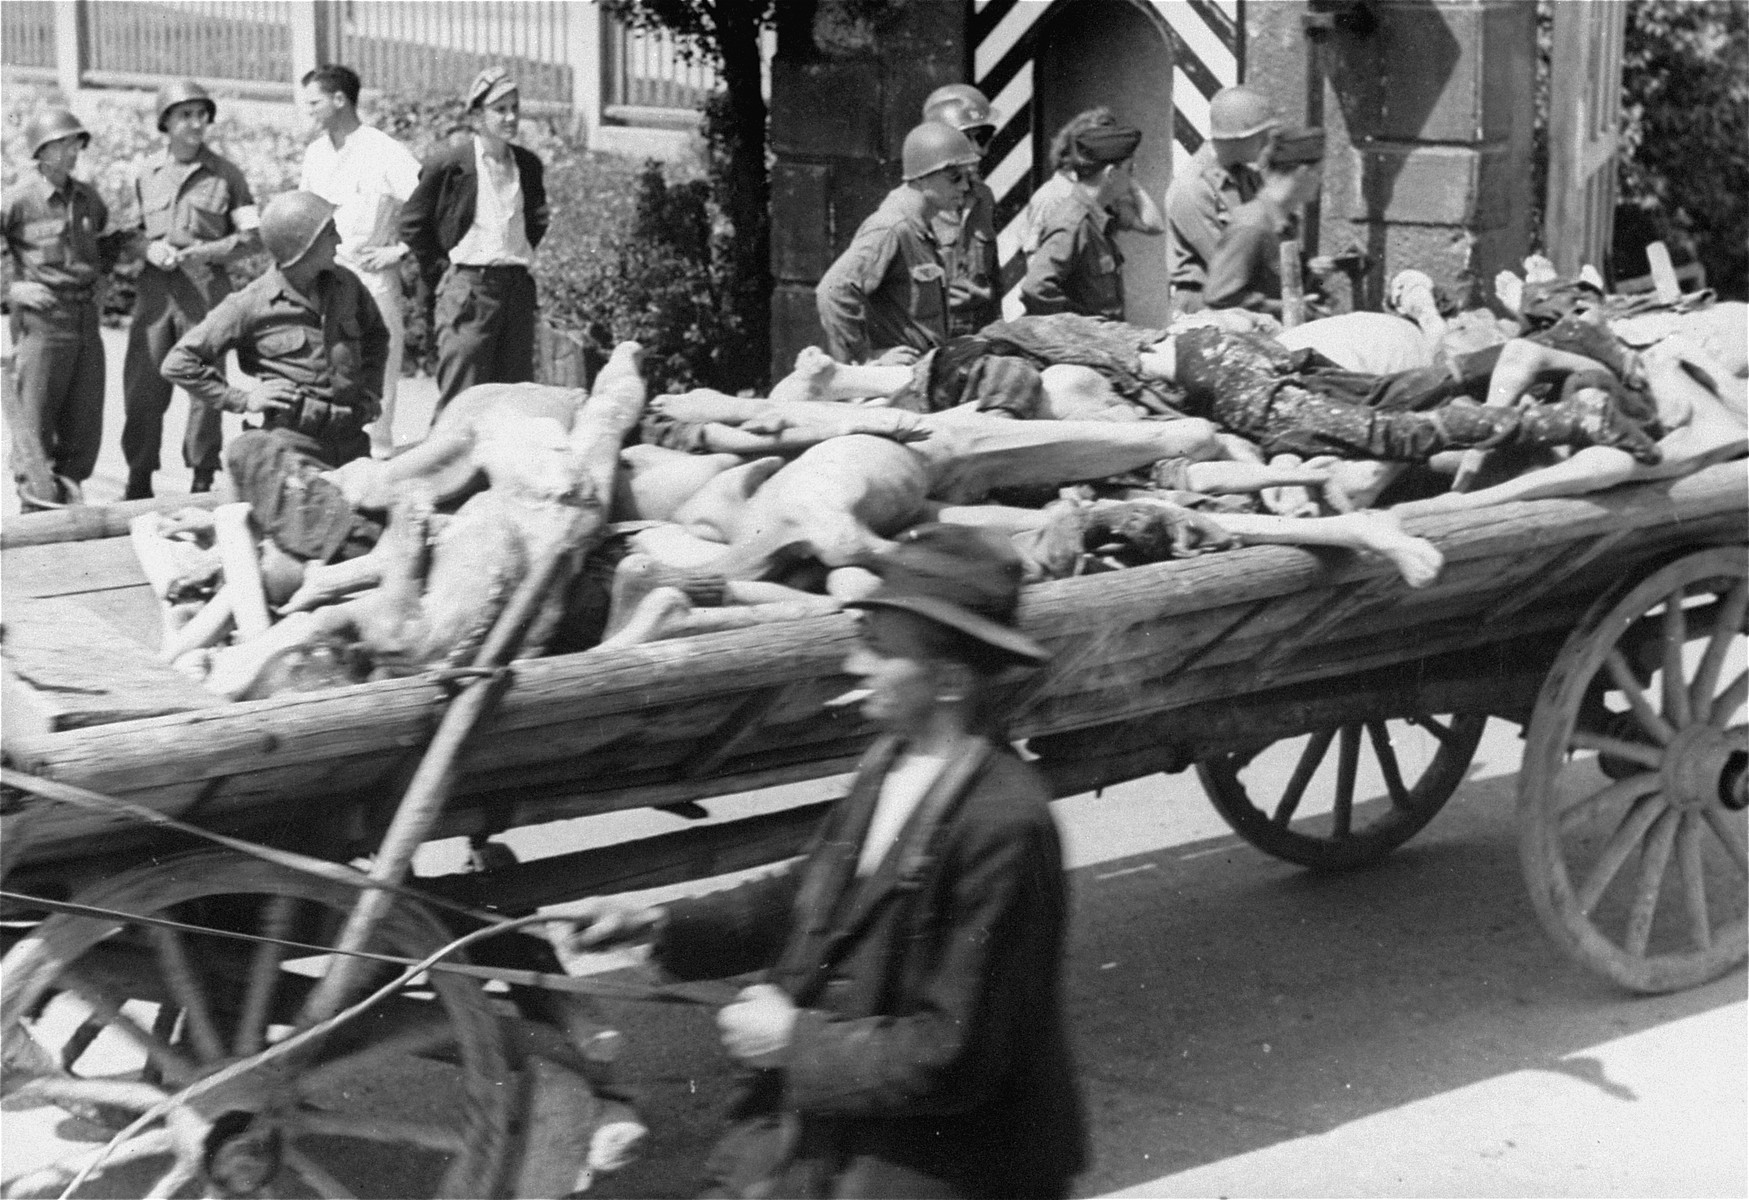 American soldiers watch a passing cart laden with corpses intended for burial leave the compound of the Dachau concentration camp.  Allied authorities required local farmers to drive their loaded carts through the town of Dachau as an education for the inhabitants.